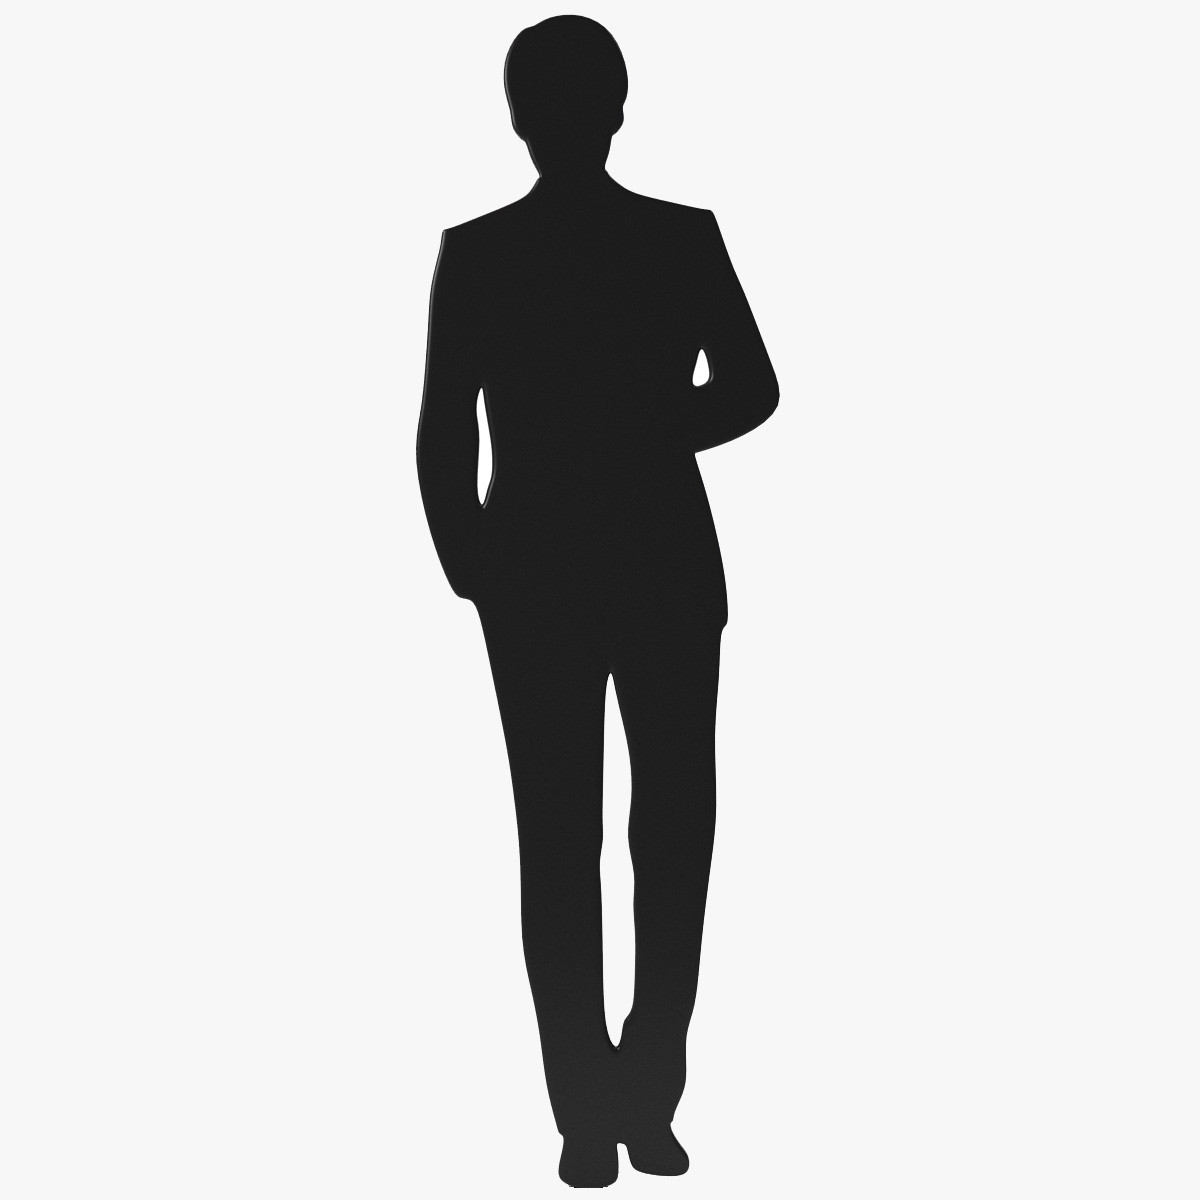 Men In Suits Silhouette